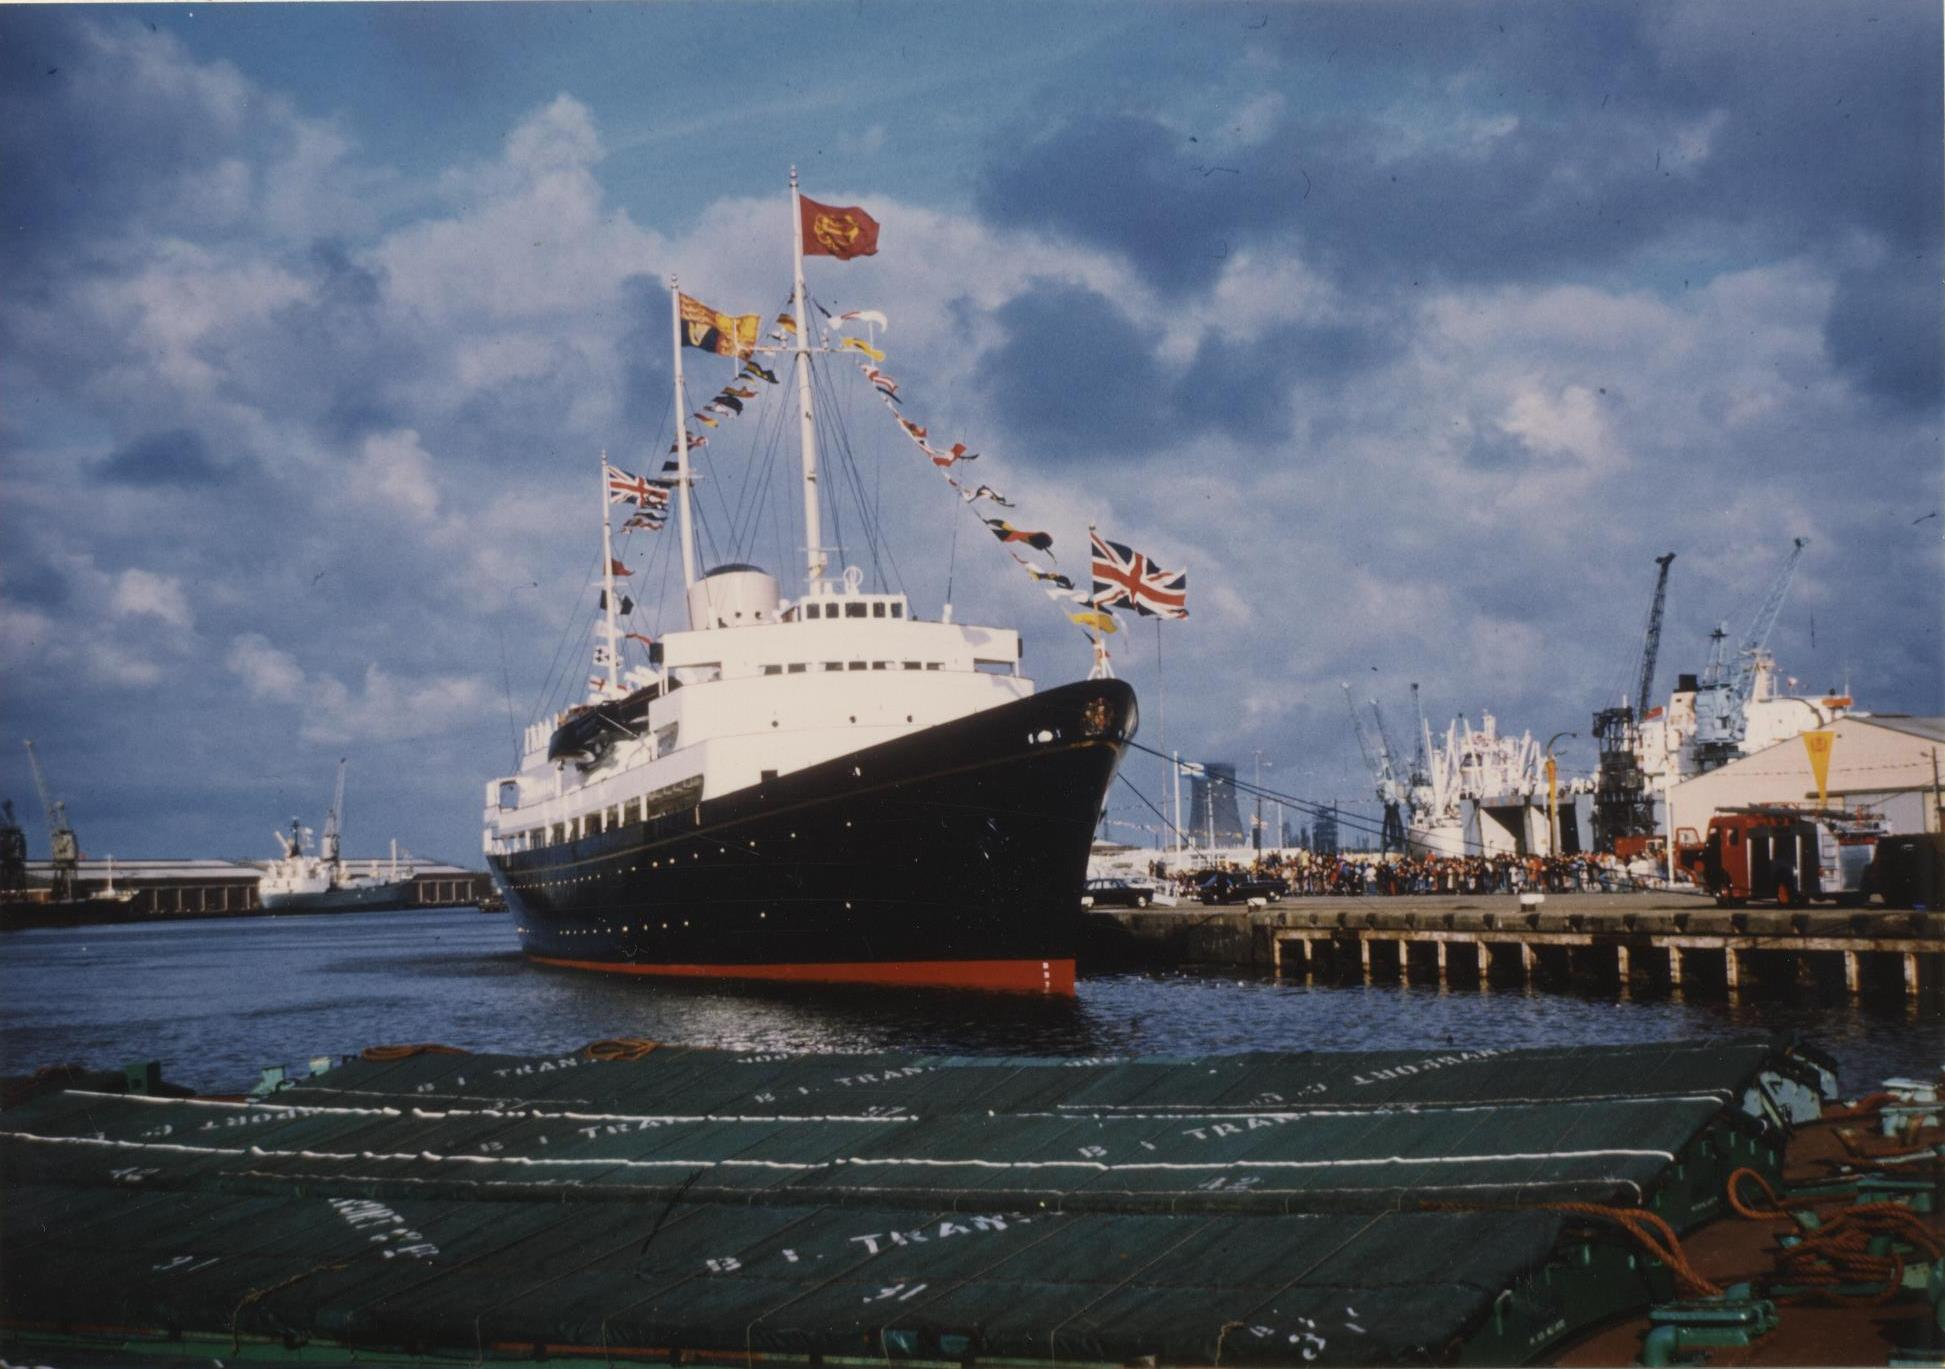 The Royal Yacht Britannia in King George Dock, Hull 13th July 1977 (archive ref CCHU-4-1-9-2)